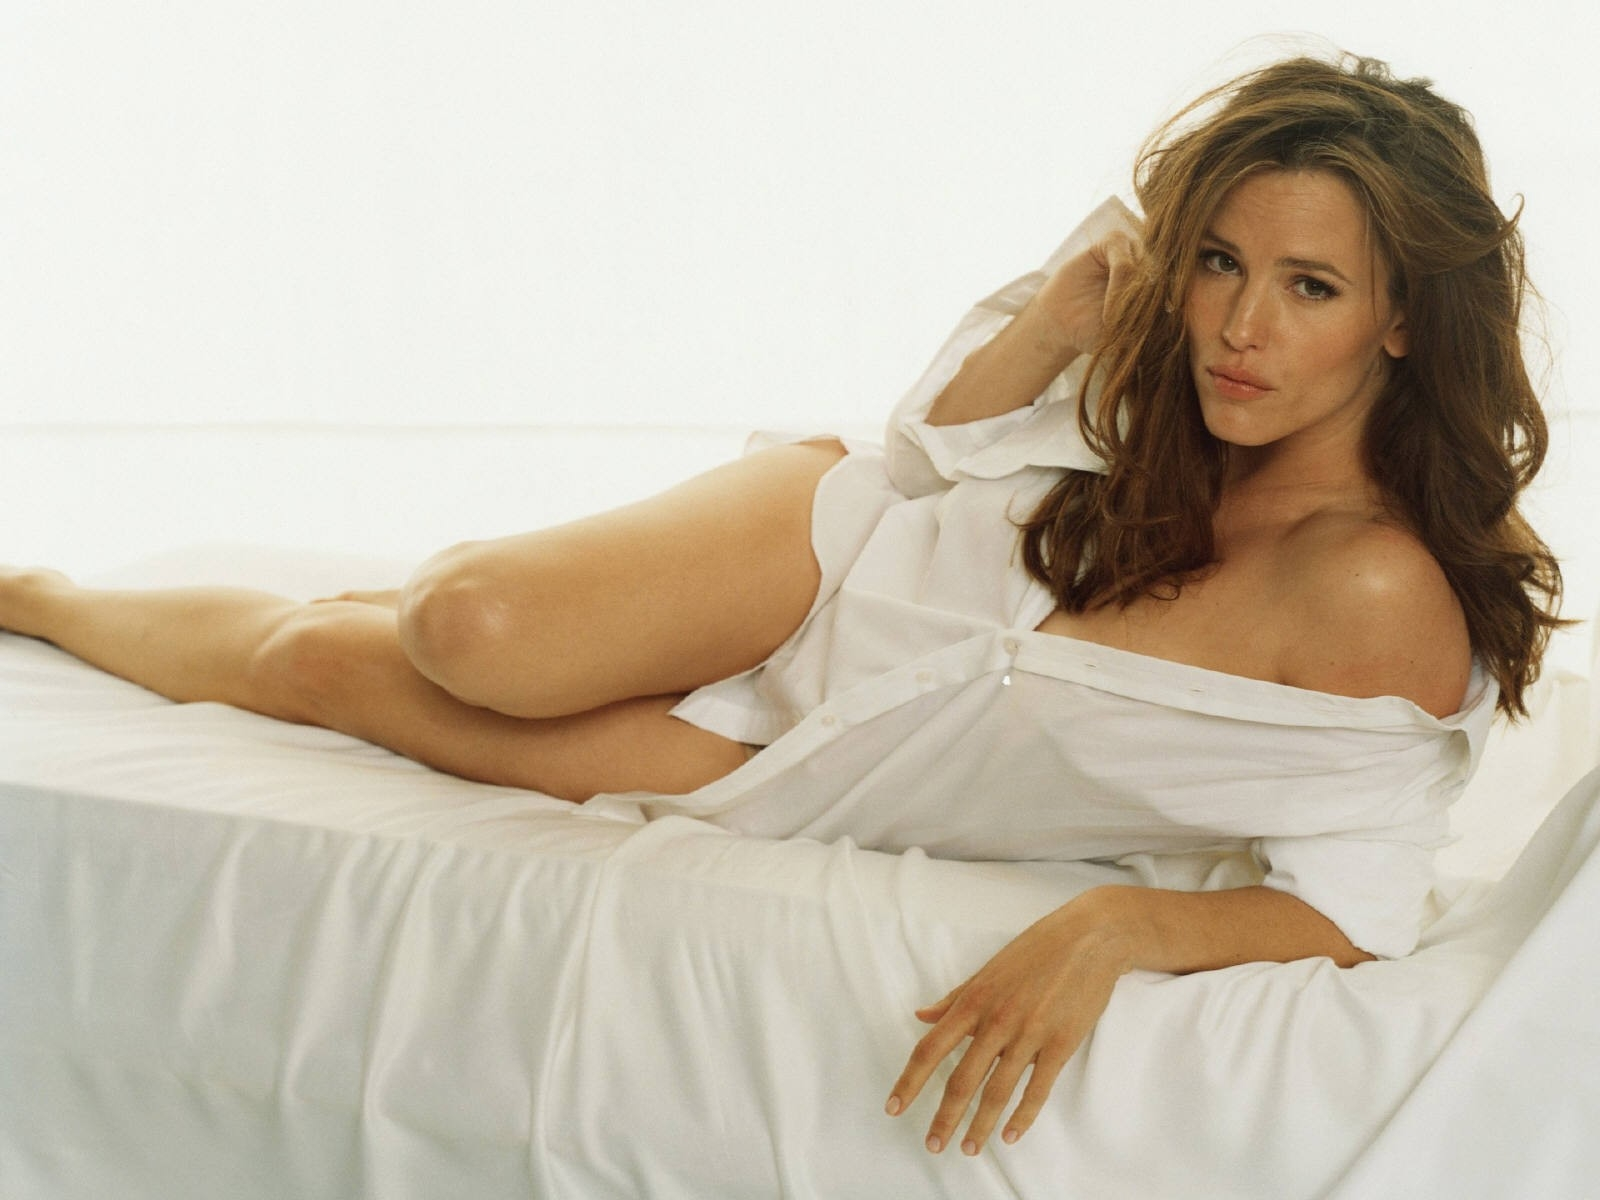 Hot Jennifer Garner Wallpaper Free Download From 1600x1200px